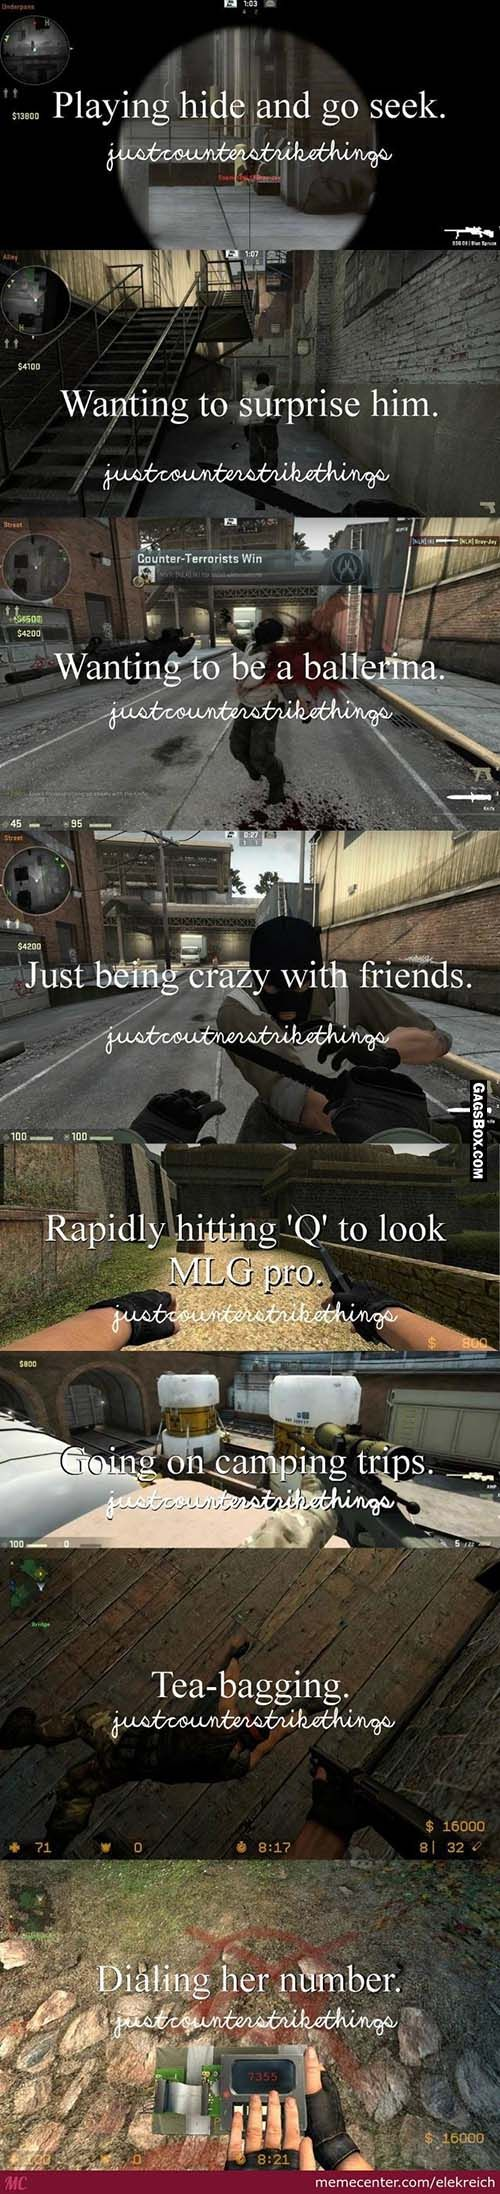 Just counter strike things #games, #console, #gamer, #funny, #lol, #fun, #humor, #comics, #meme, #gag, #box, #lolpics, #Funnypics,